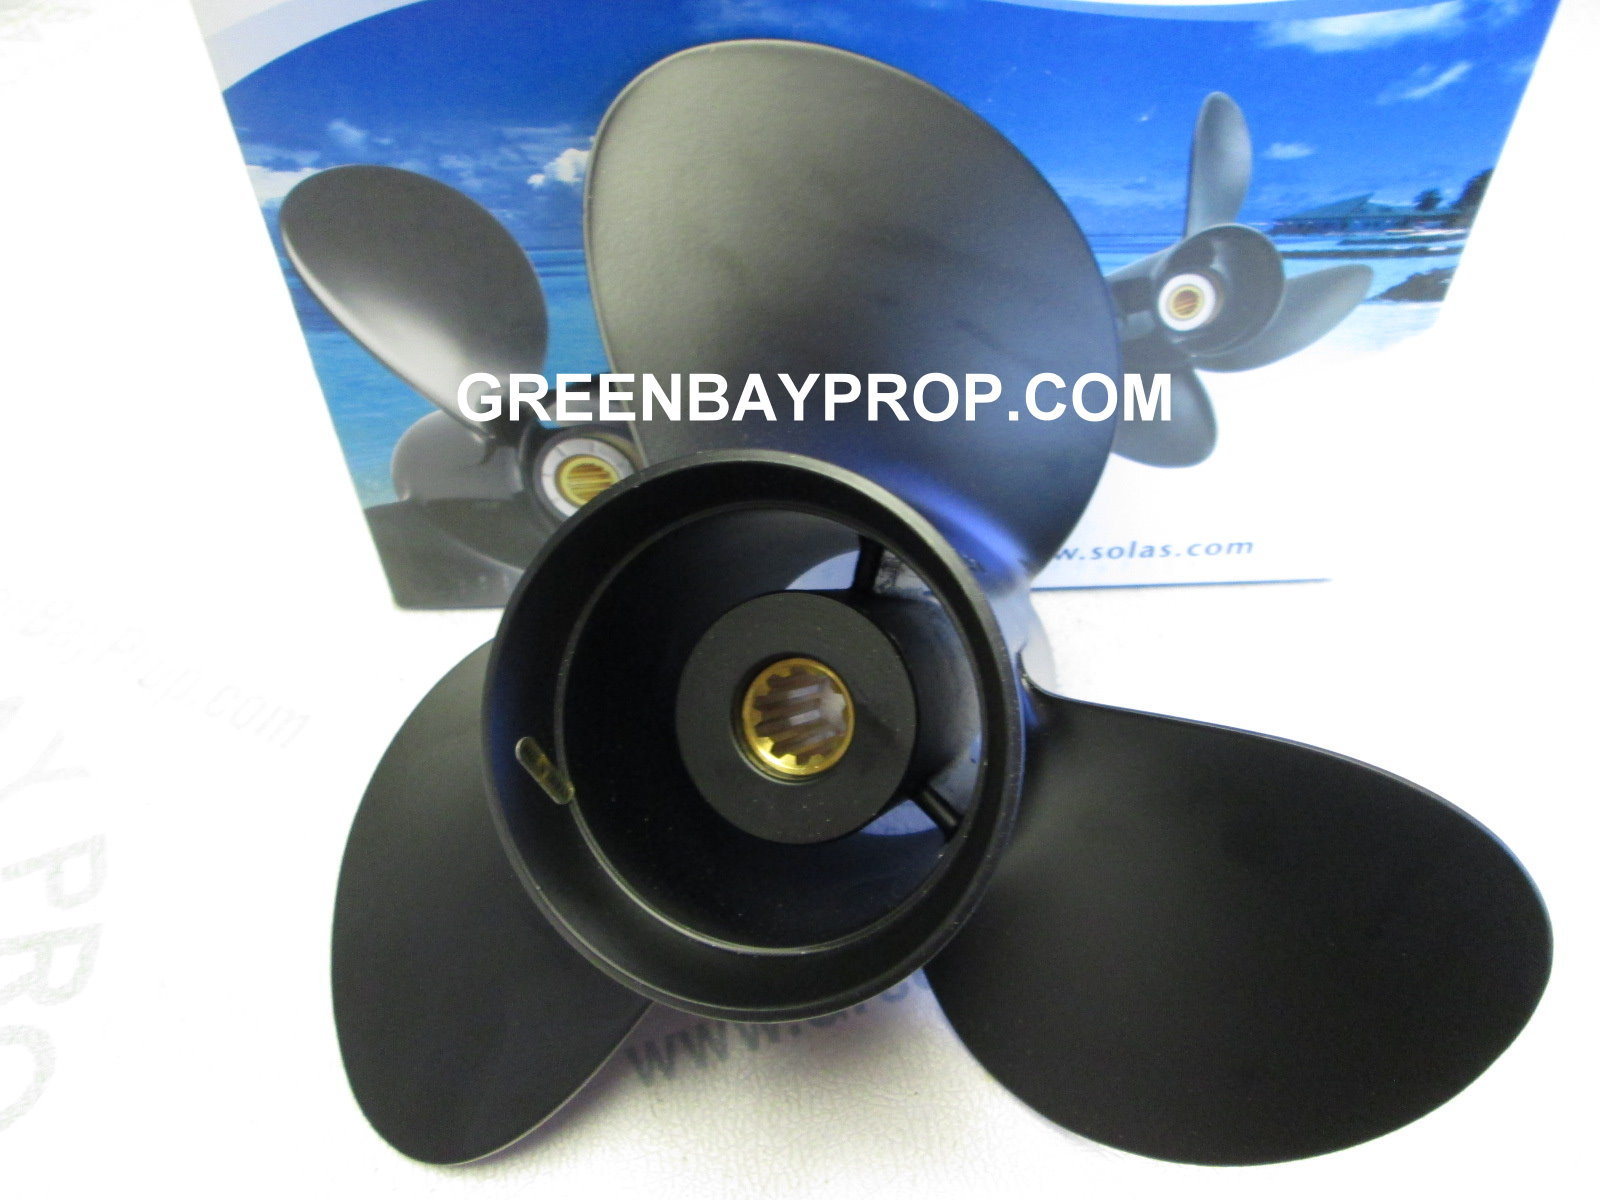 Details about 10 3 x 12 Pitch Prop For 20-30 HP Suzuki Outboards